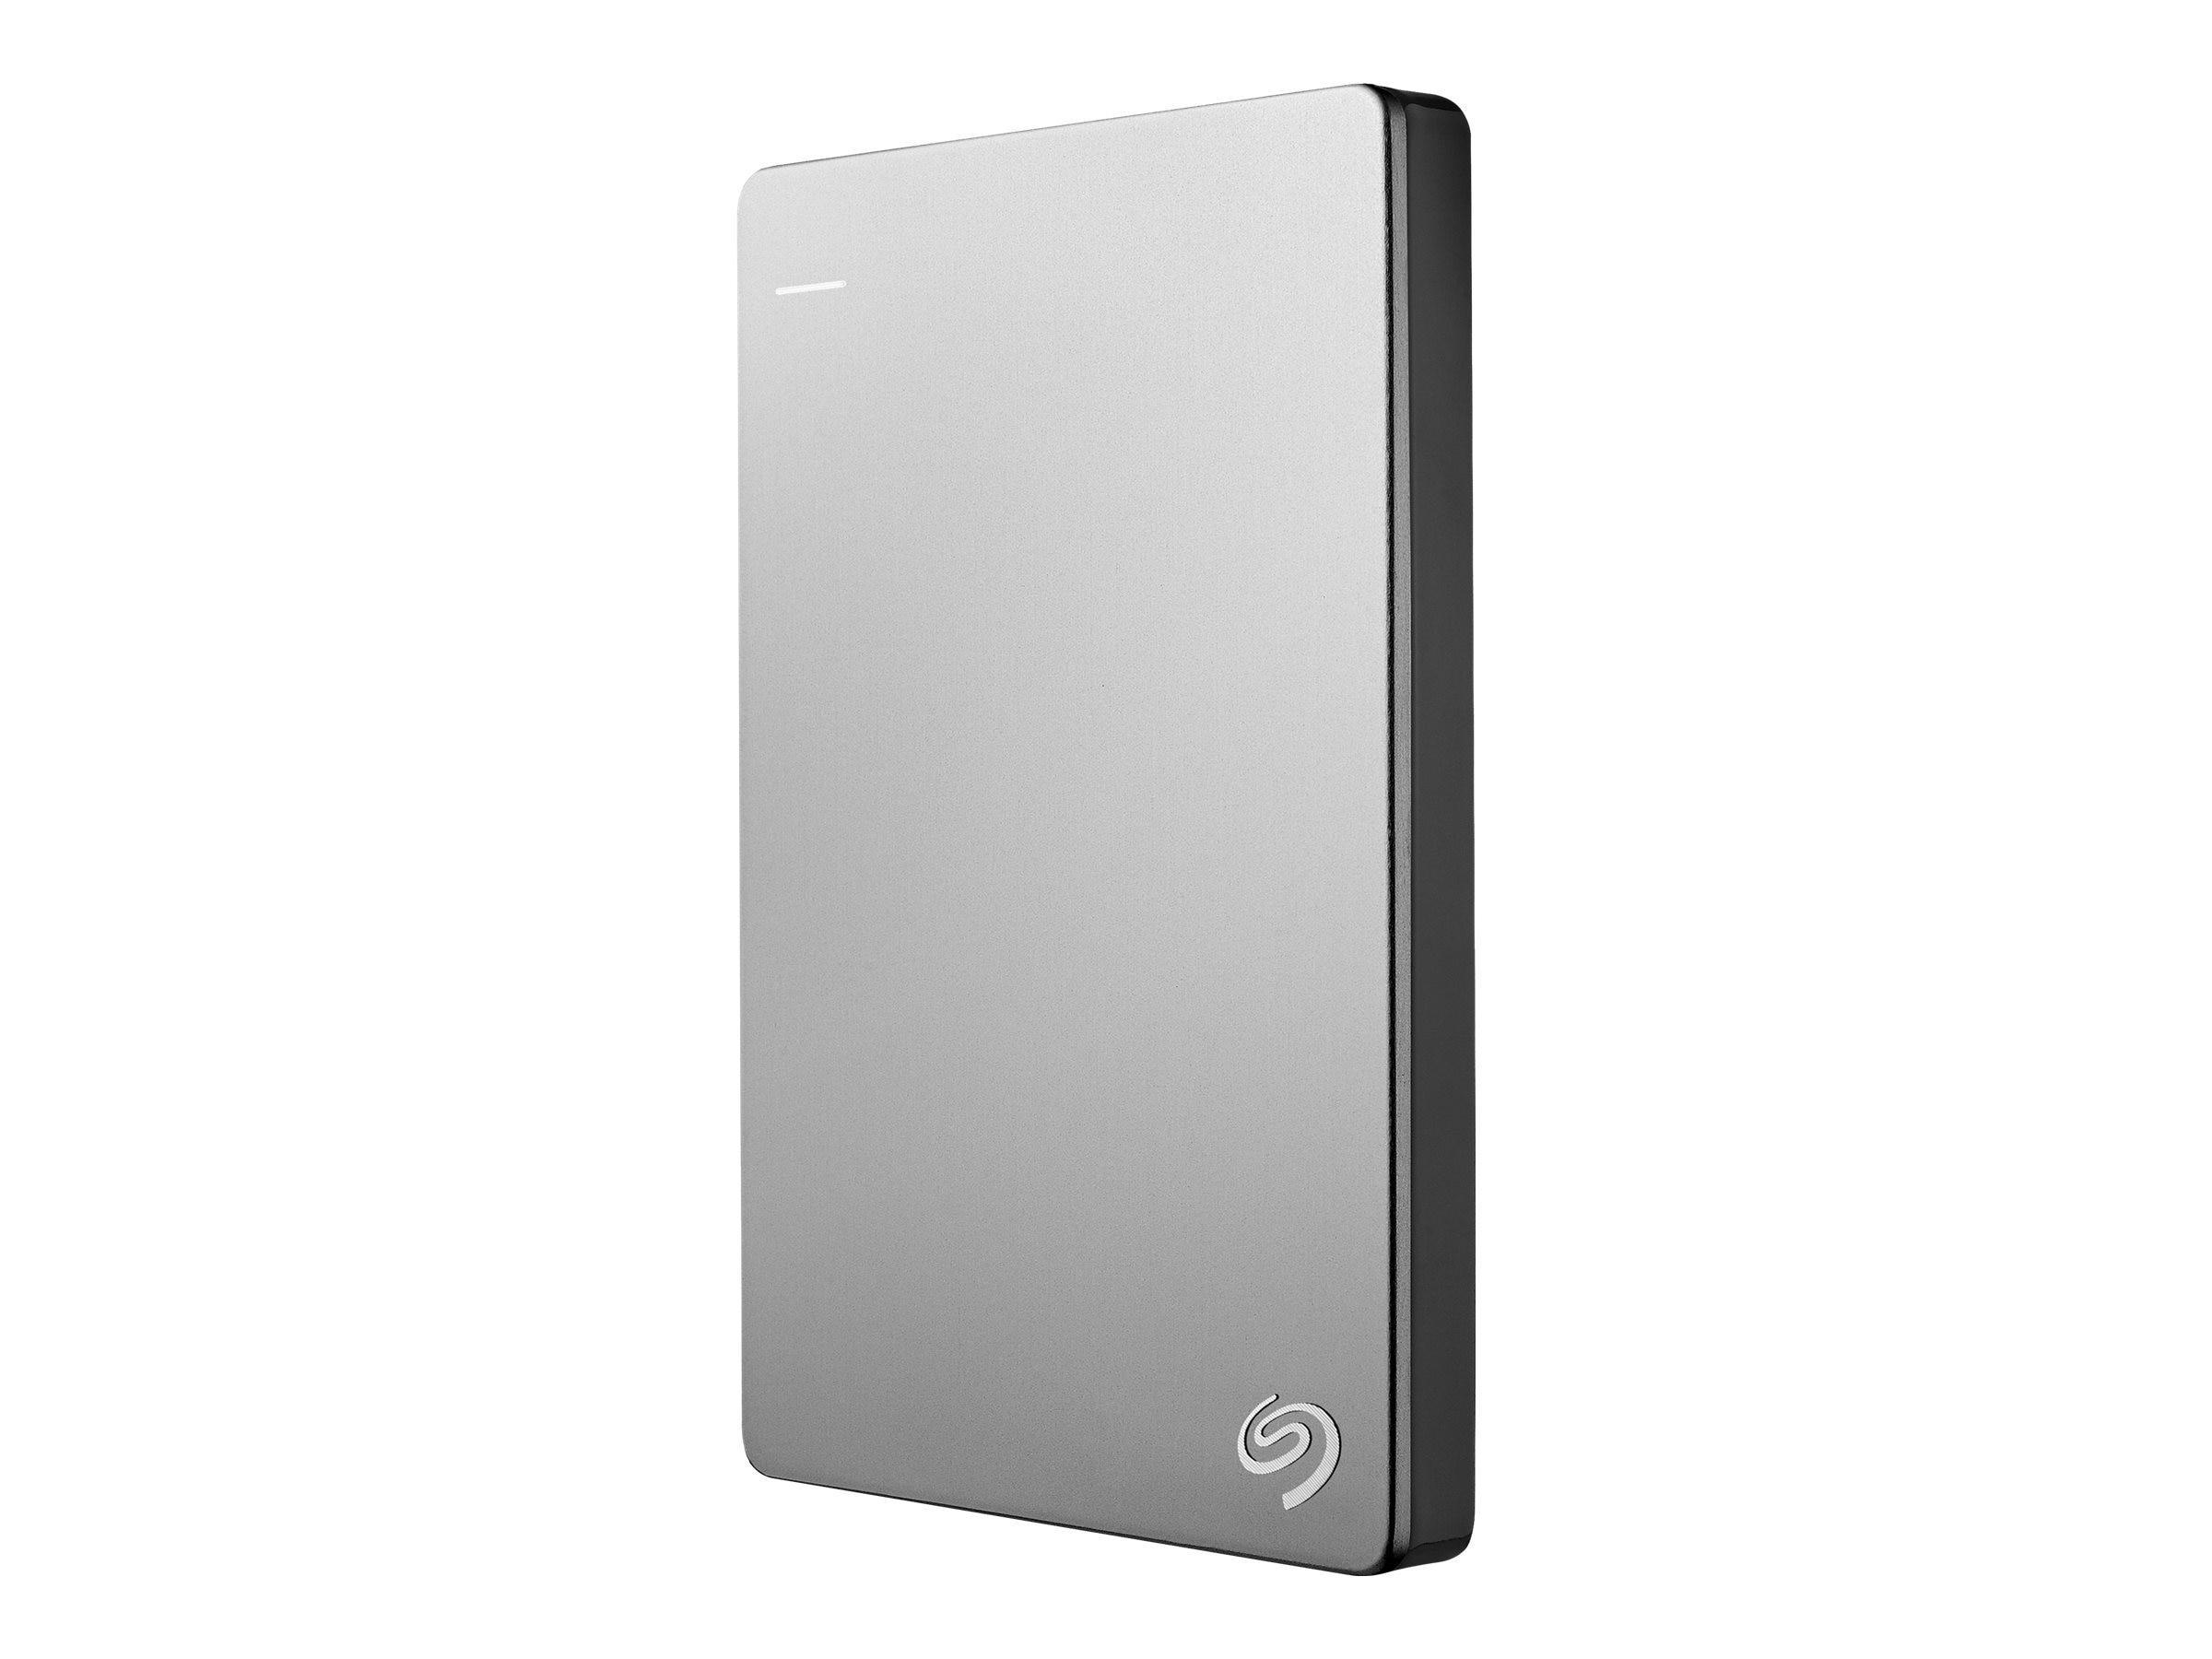 Seagate 500GB Backup Plus  Slim for Mac USB 3.0 Portable Hard Drive, STCF500102, 15468870, Hard Drives - External